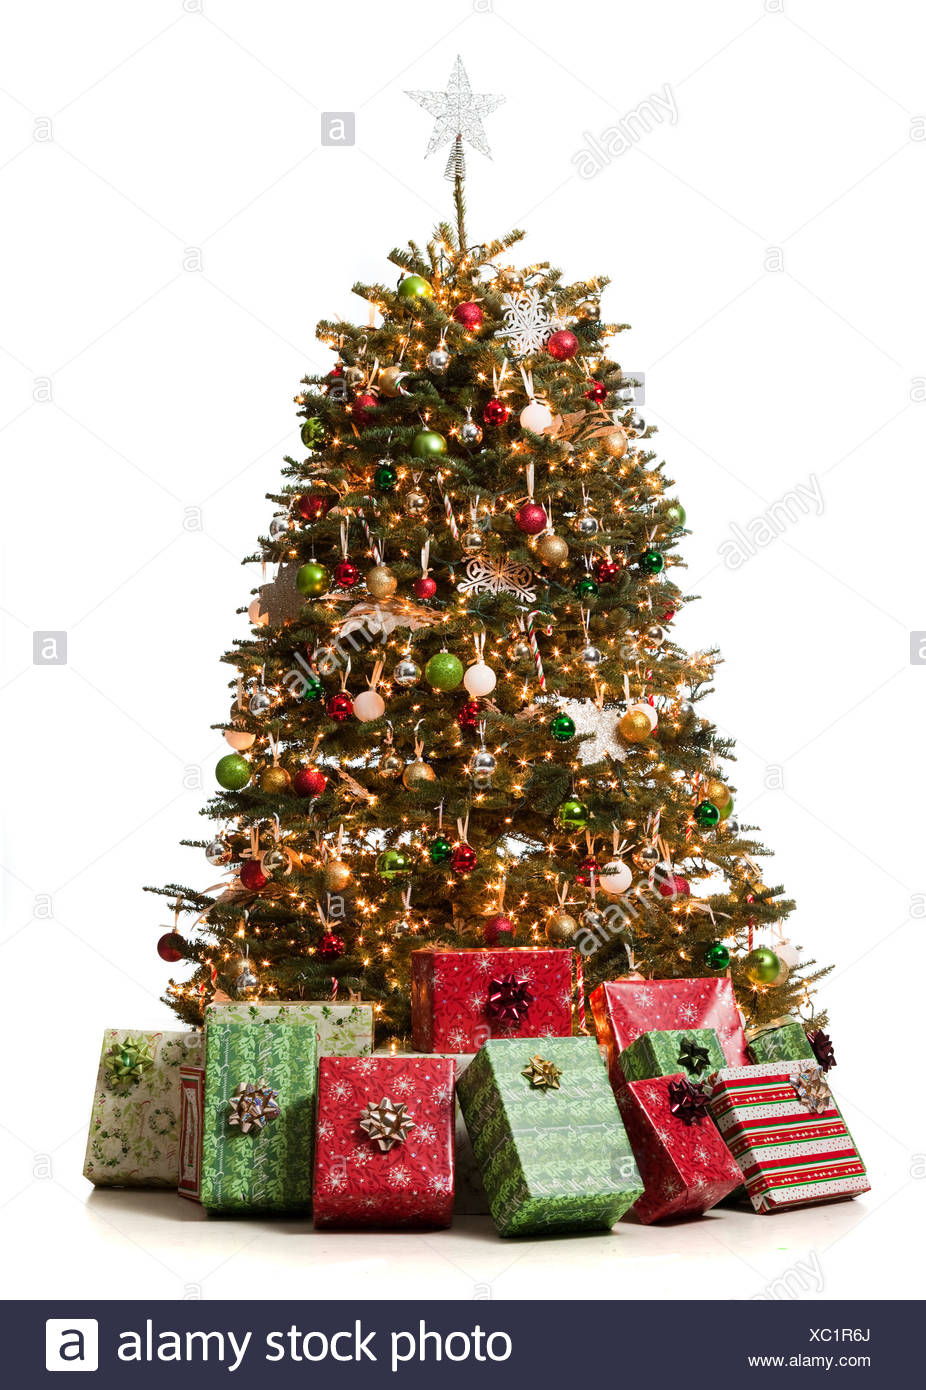 christmas tree with presents underneath it - Stock Image